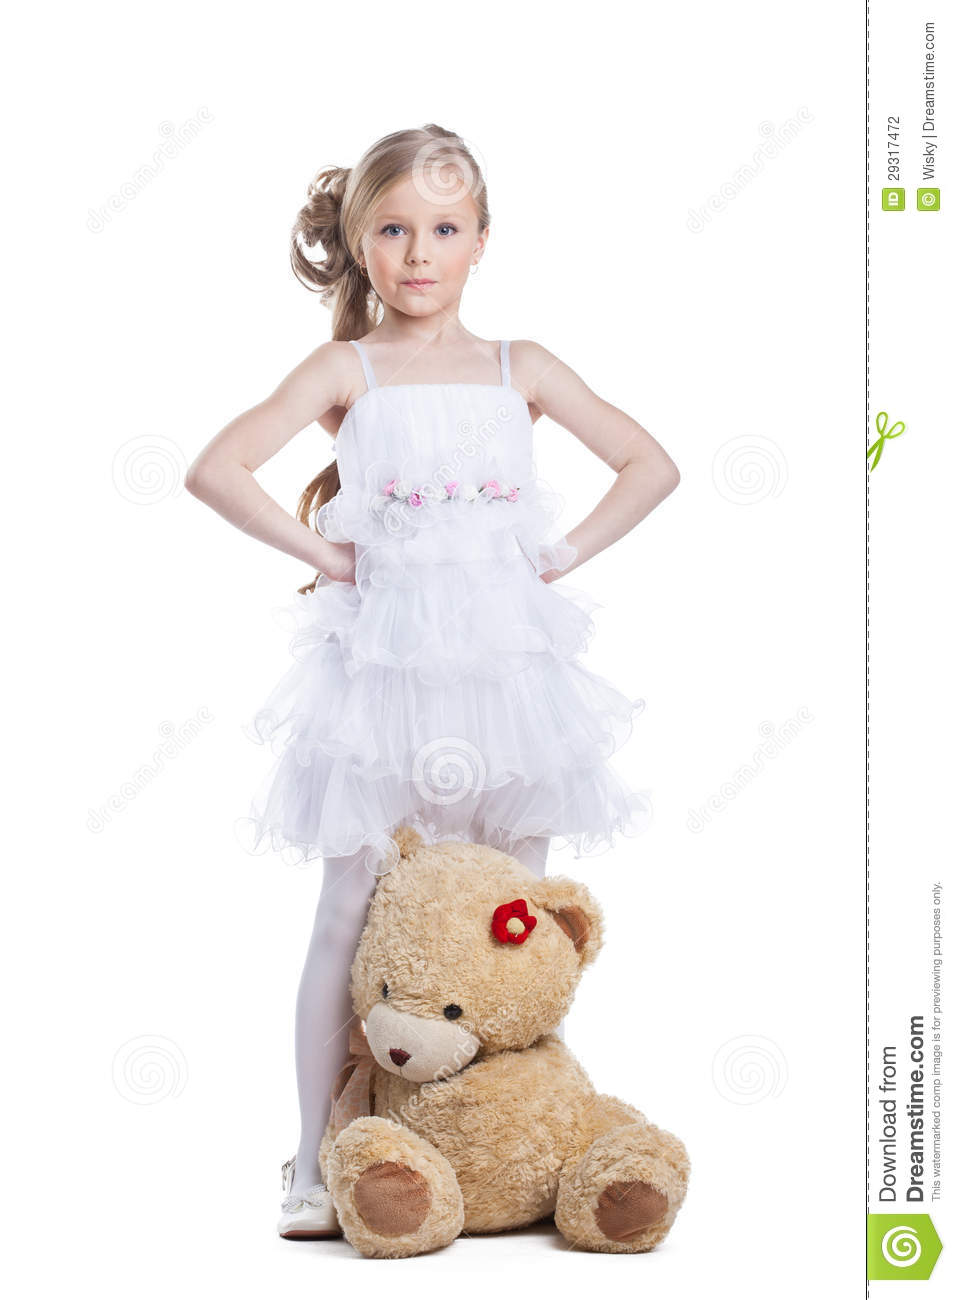 Cute Little Girl With Teddy Bear Posing In Studio Stock